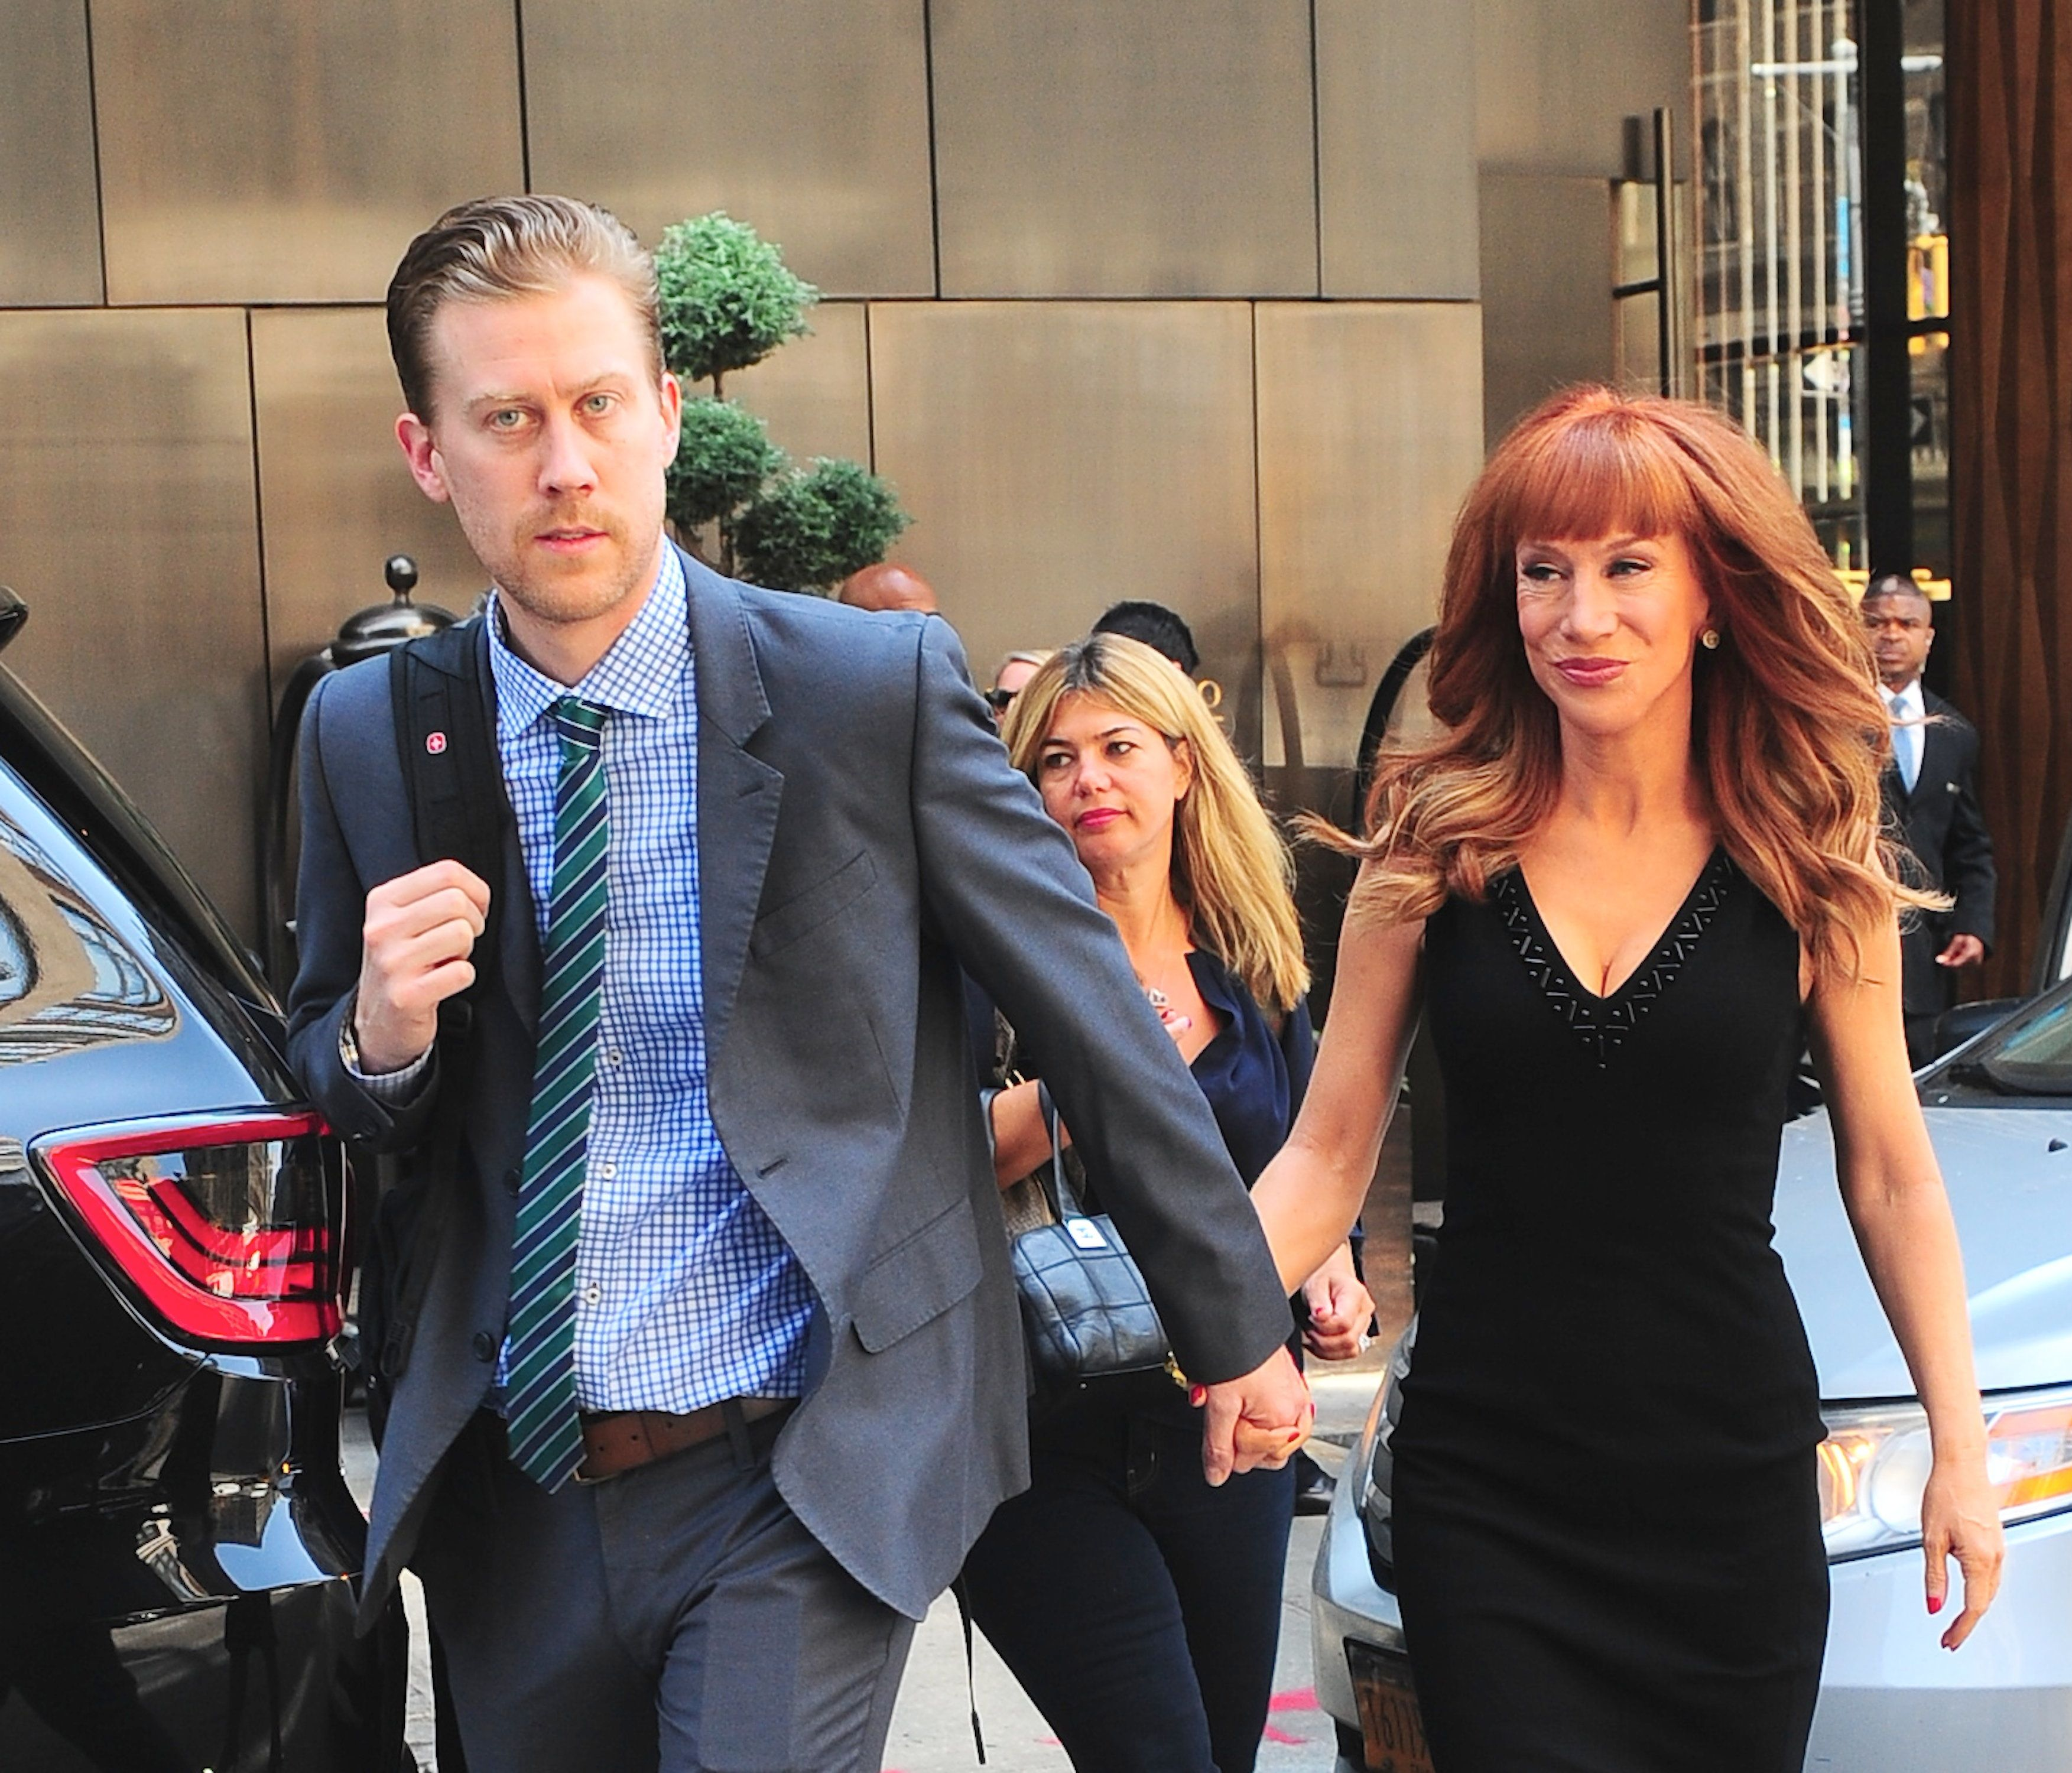 Randy Bick and Kathy Griffin are seen in New York City on Aug. 20, 2014.